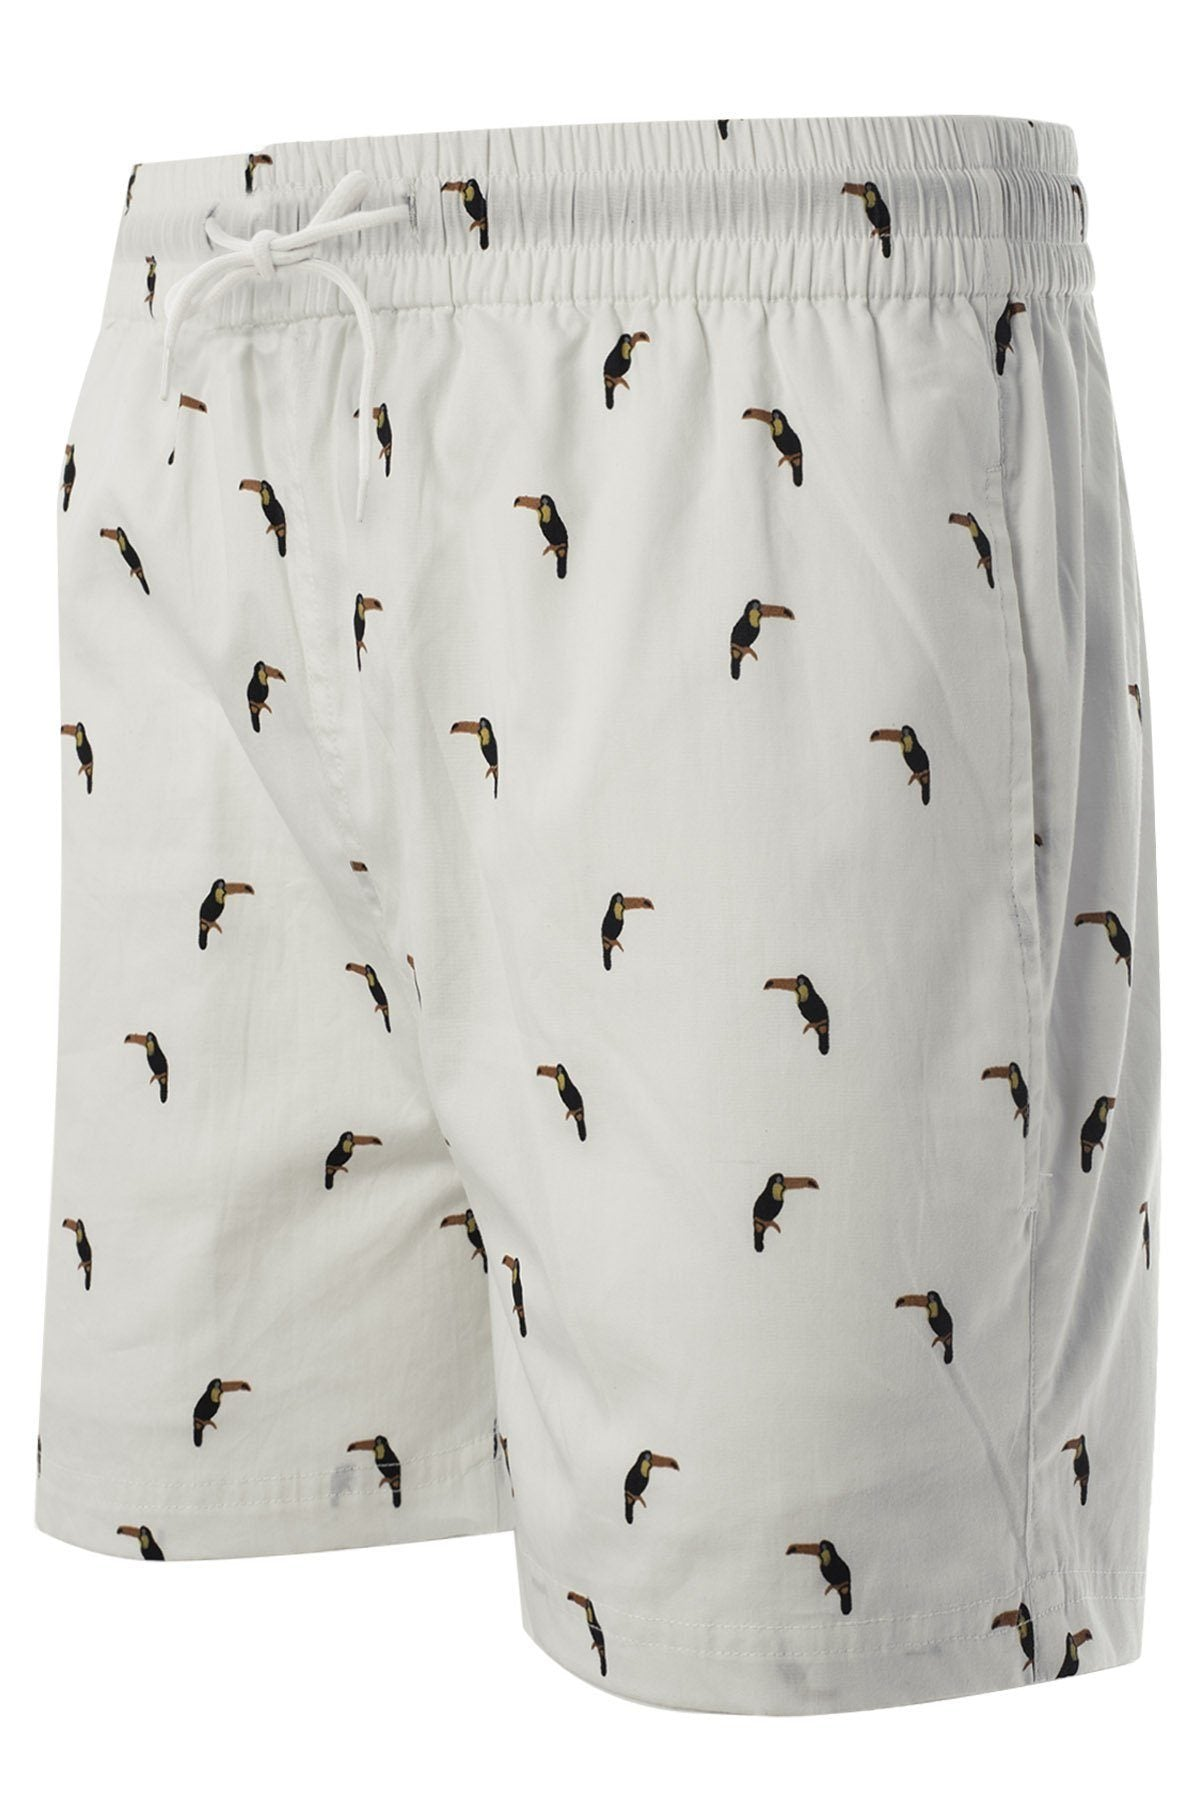 Toucan Shorts White